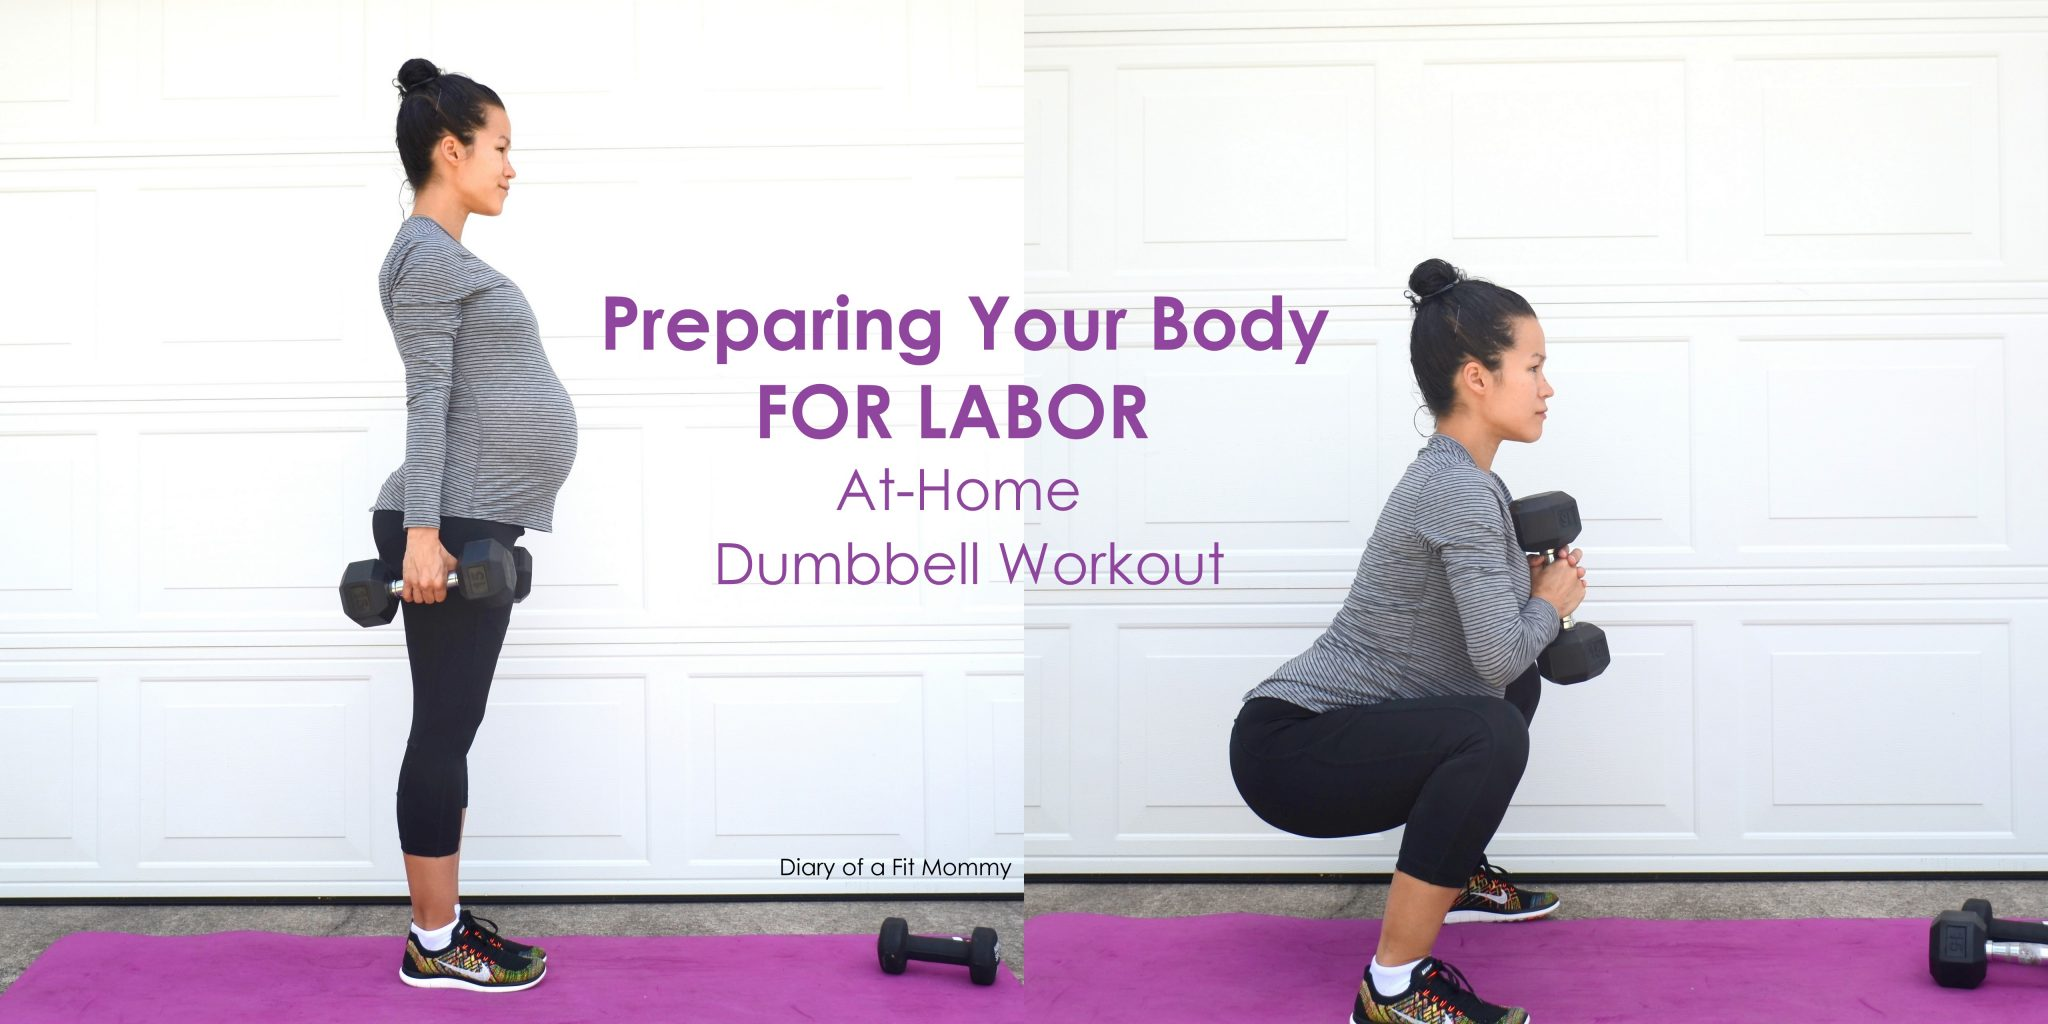 Preparing for Labor: At Home Dumbbell Workout - Diary of a Fit Mommy